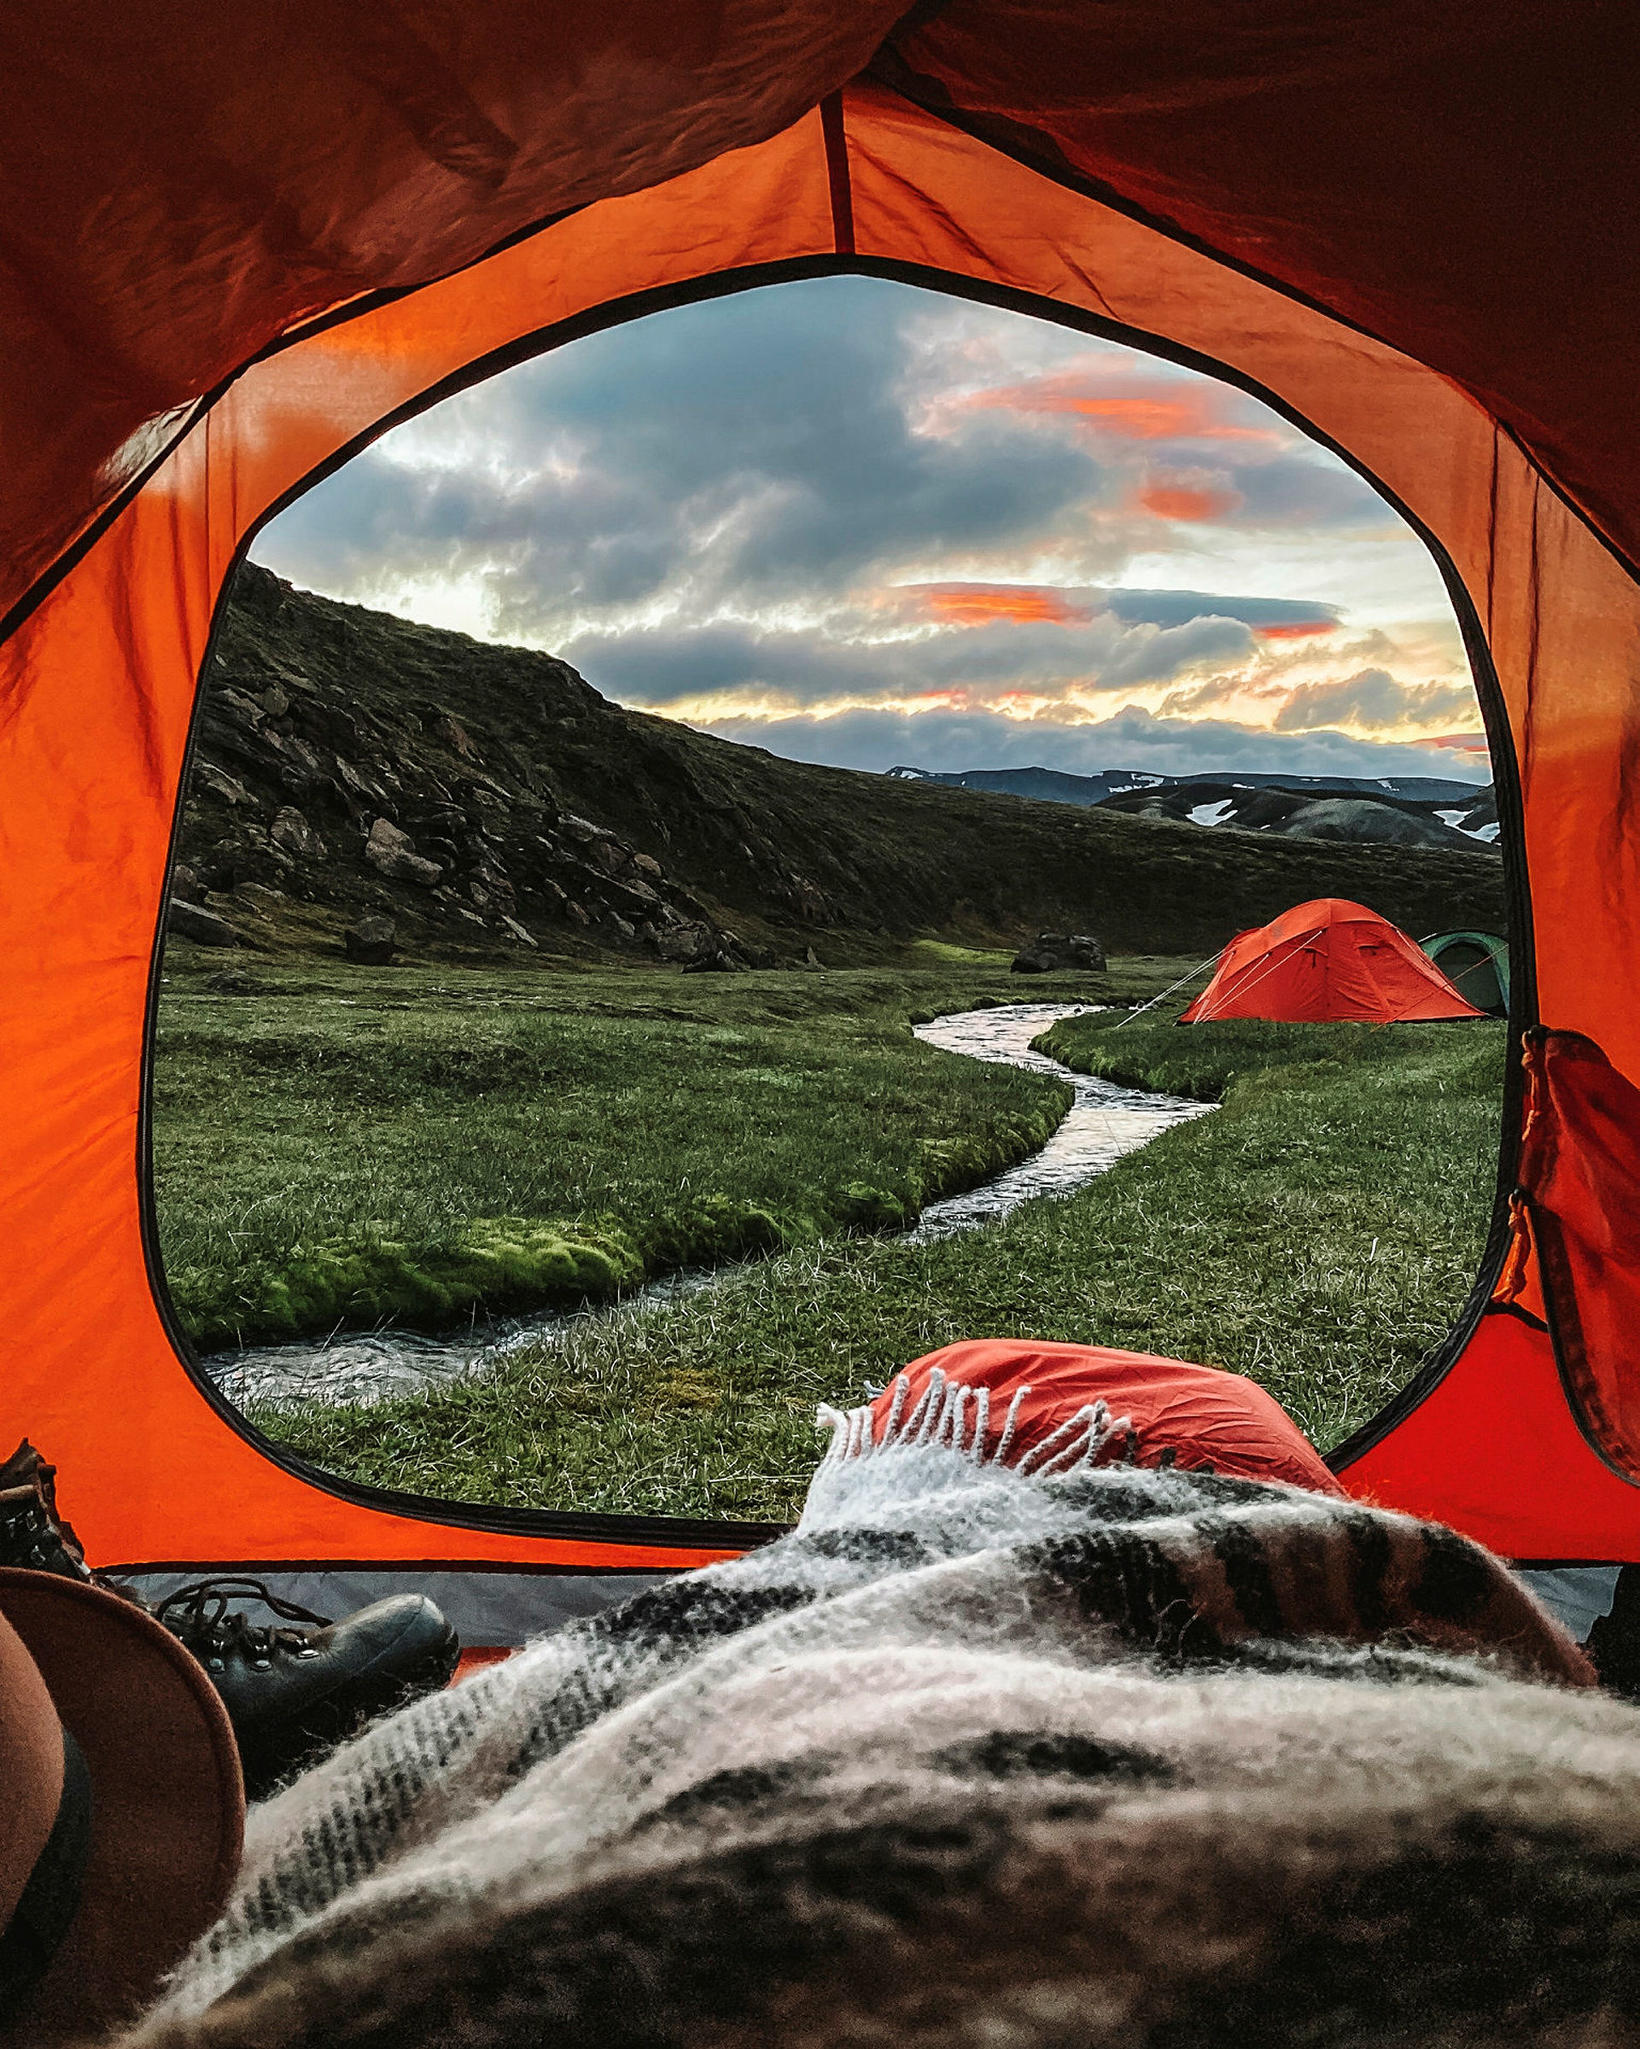 Jón has spent most nights in a tent this summer.